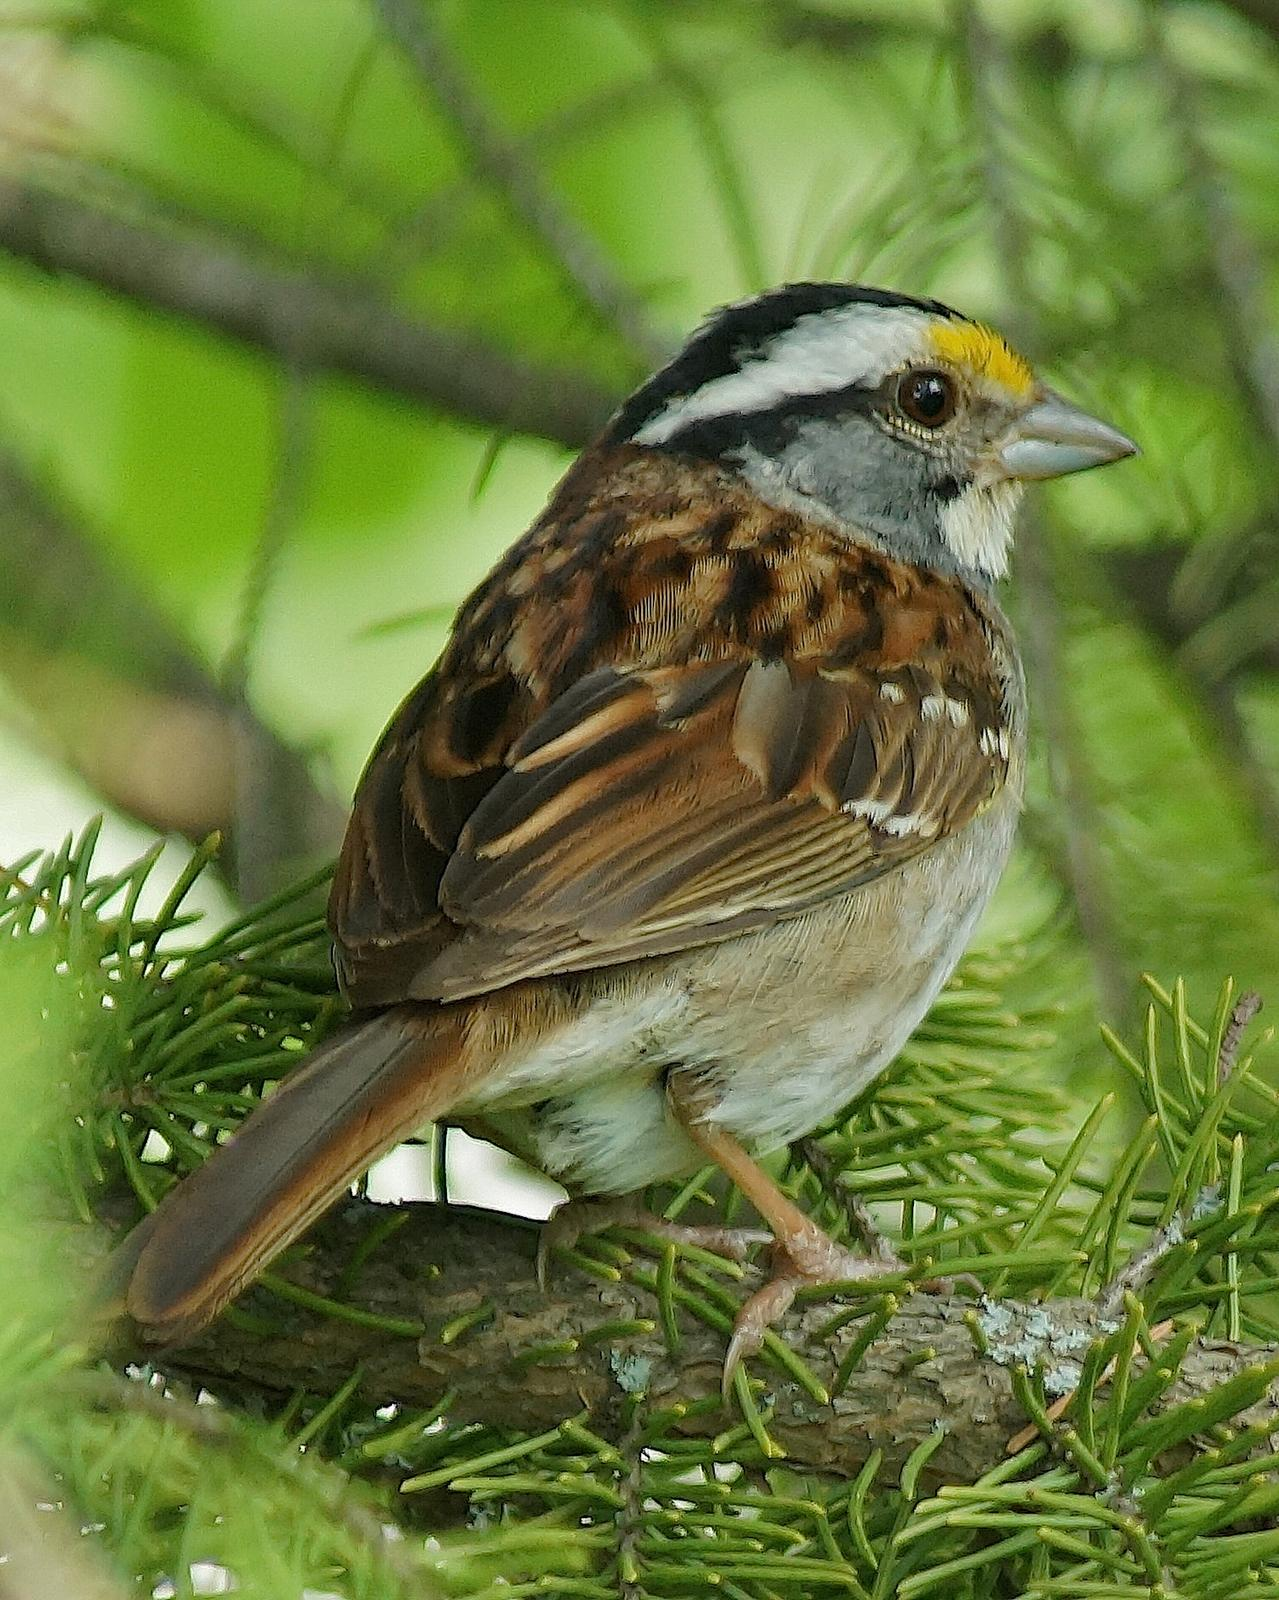 White-throated Sparrow Photo by Gerald Hoekstra